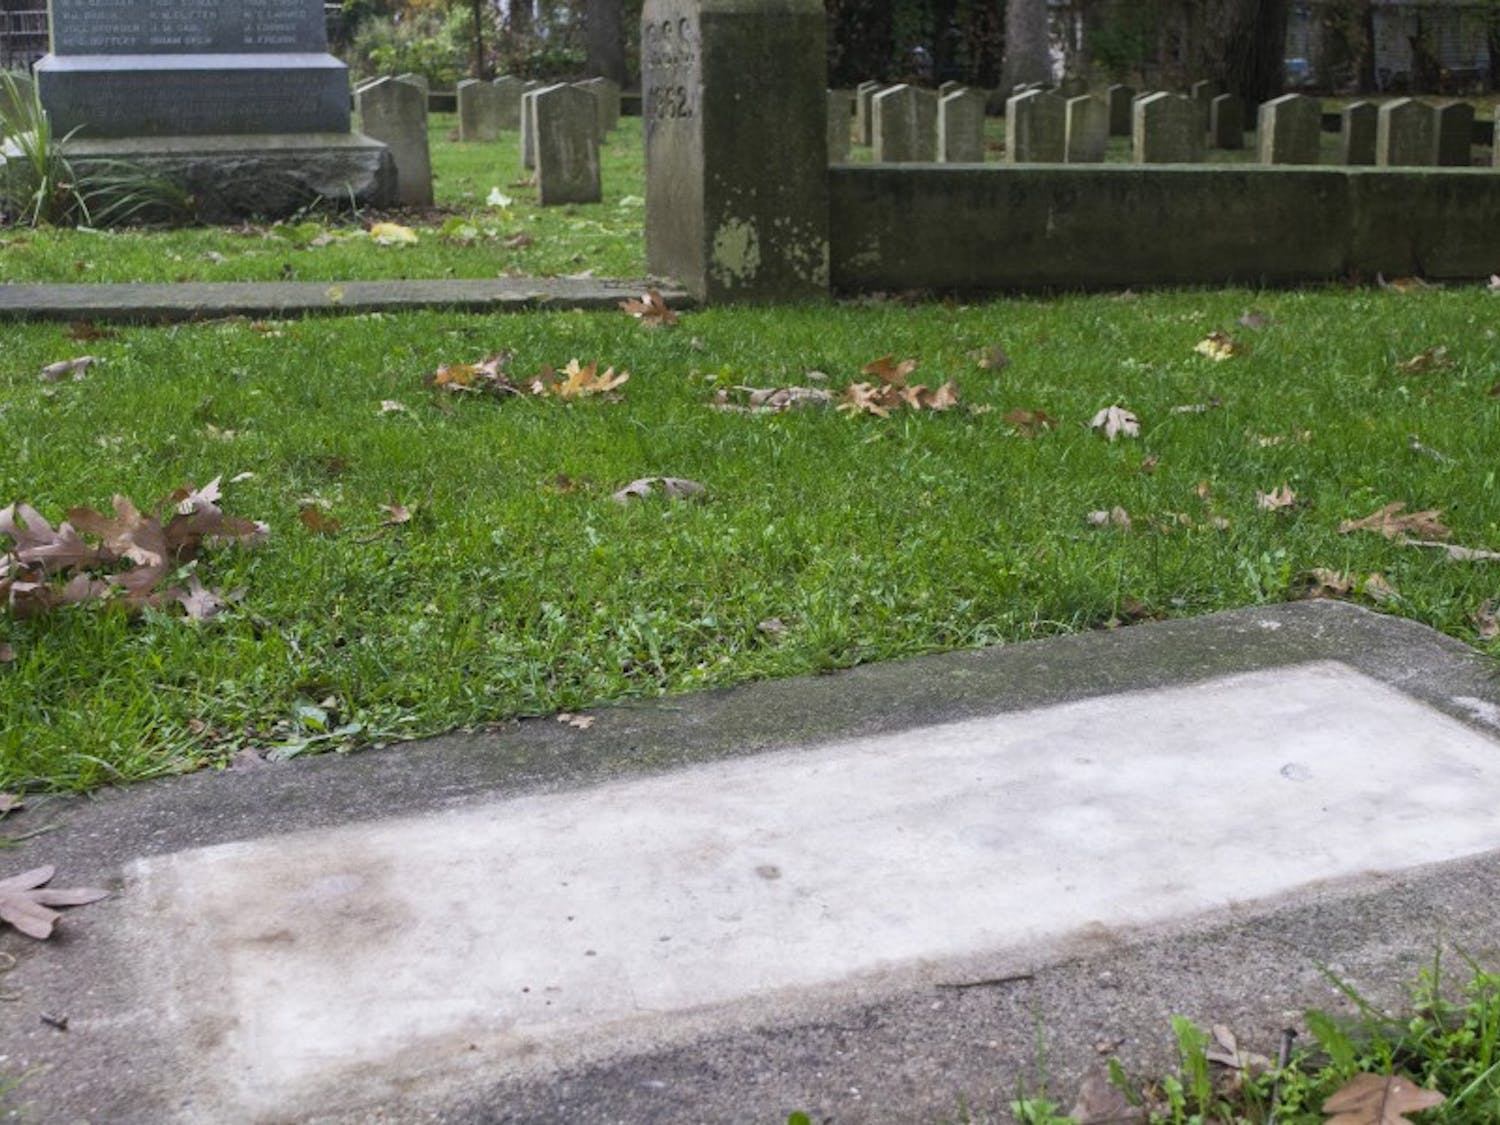 The Madison Landmarks Commission broke from the Equal Opportunities Commission in recommending that a confederate monument be kept in an area cemetary, with an added display giving context to the memorial.